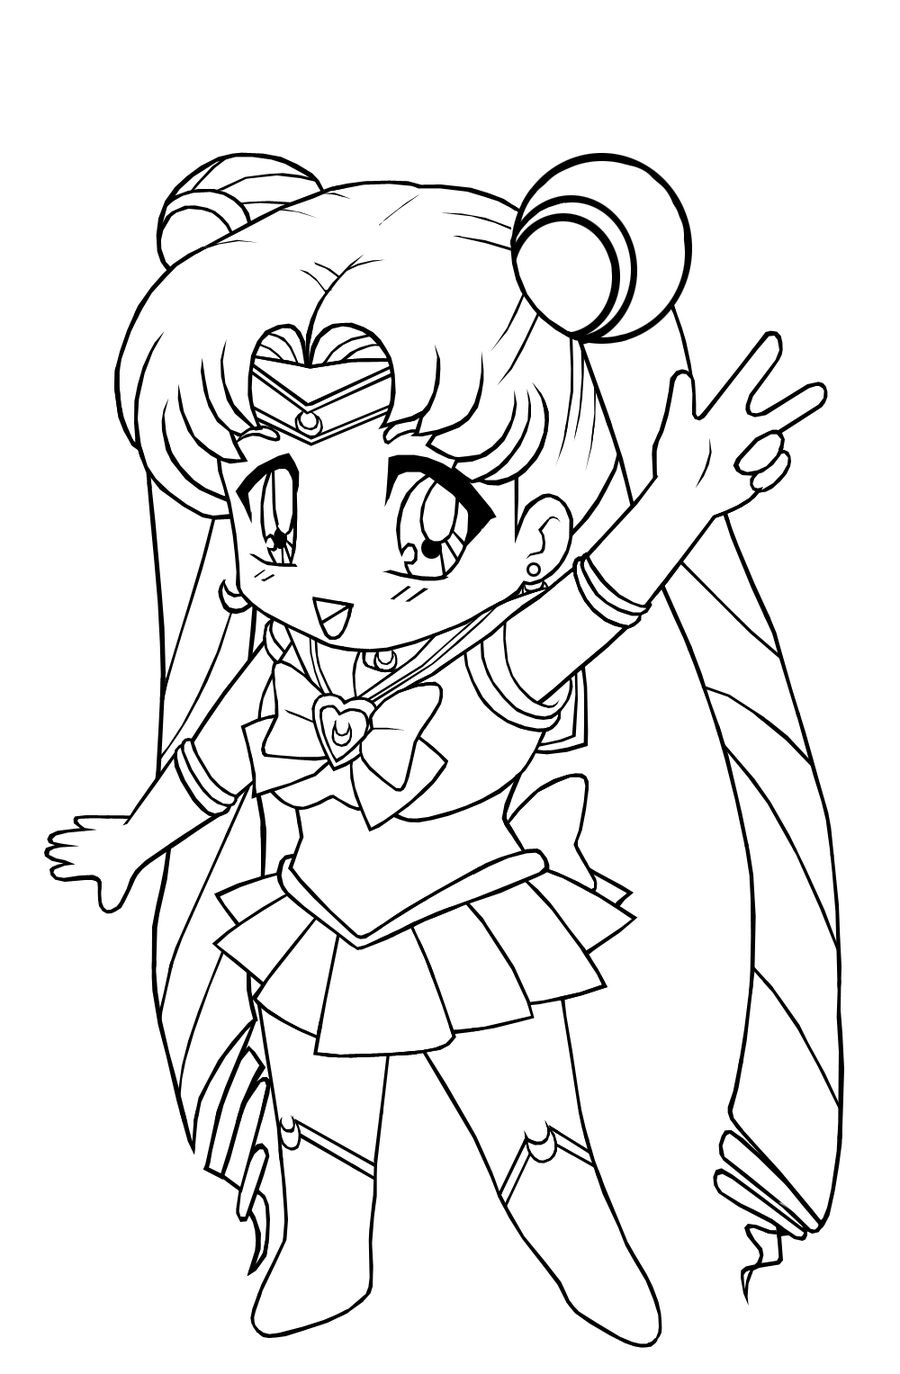 Free printable chibi coloring pages for kids for Free online drawing websites